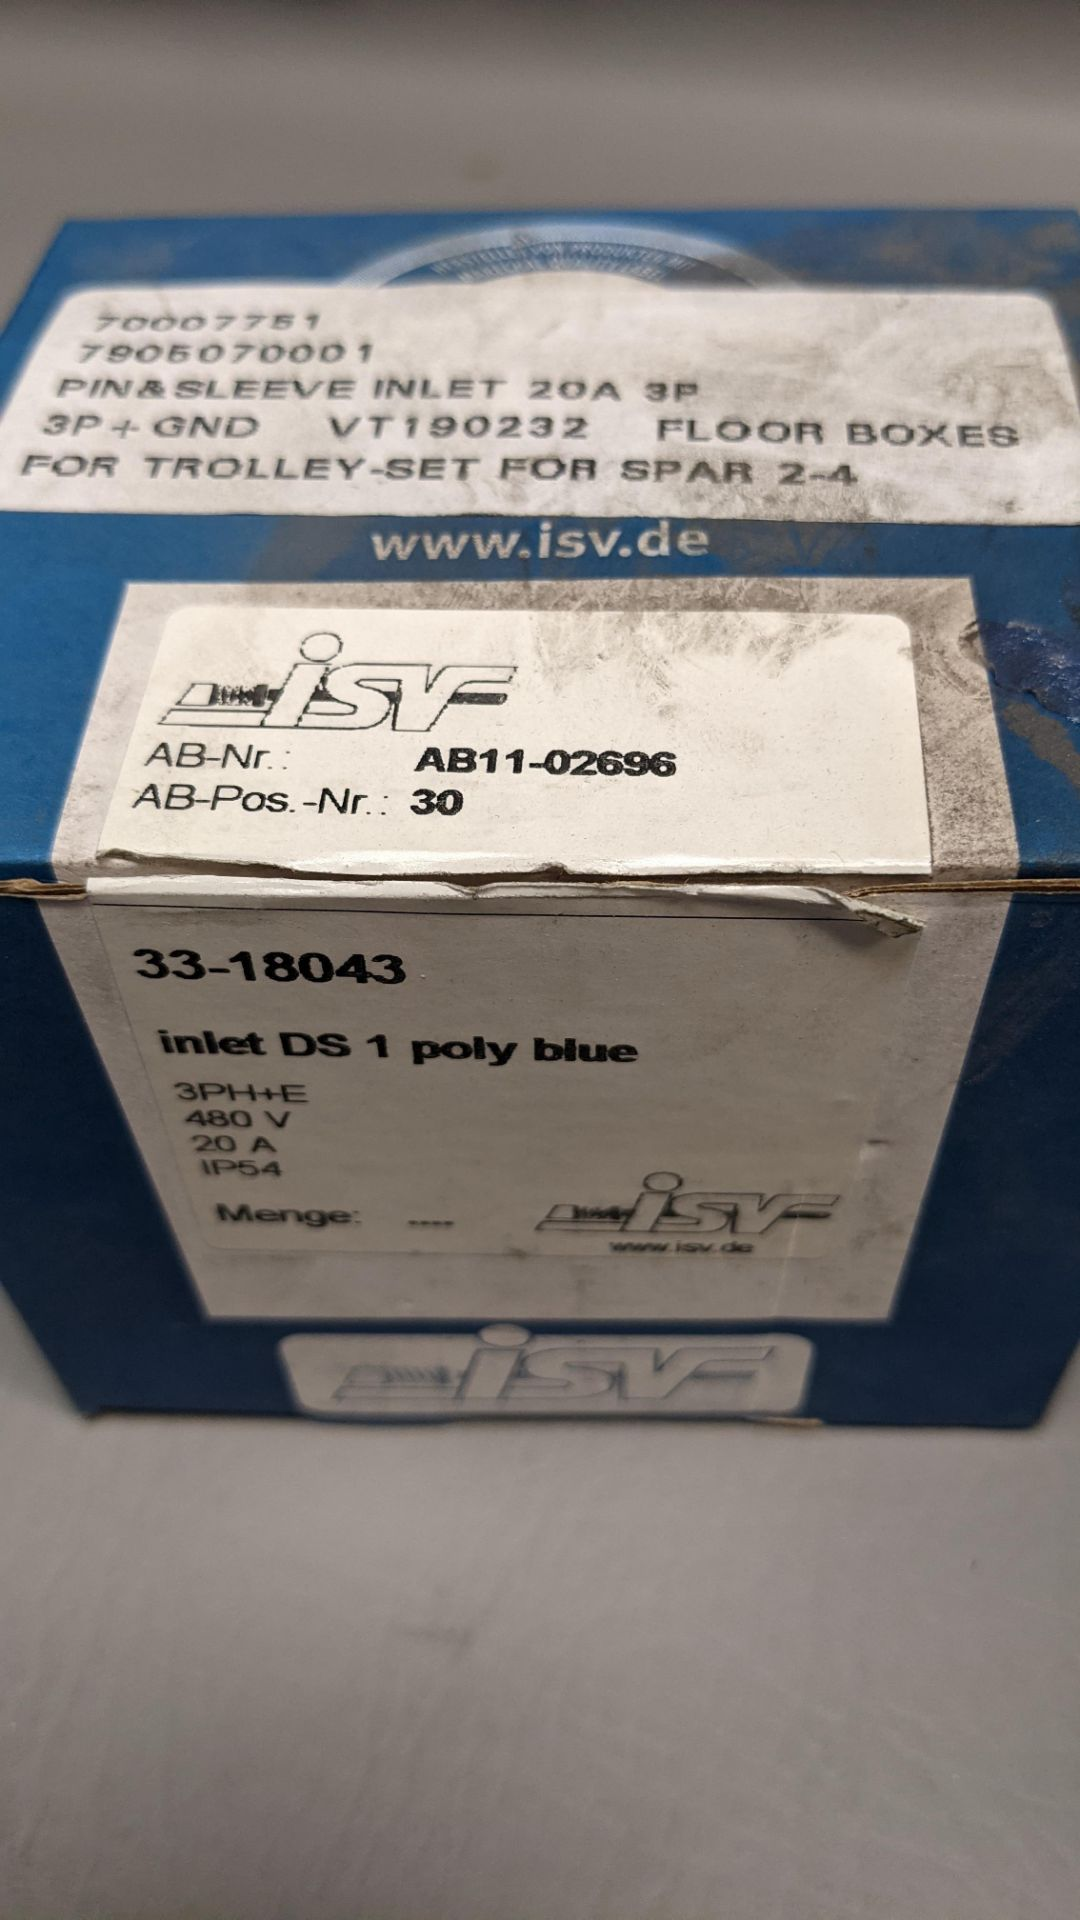 LOT OF NEW MRO PARTS - Image 4 of 5